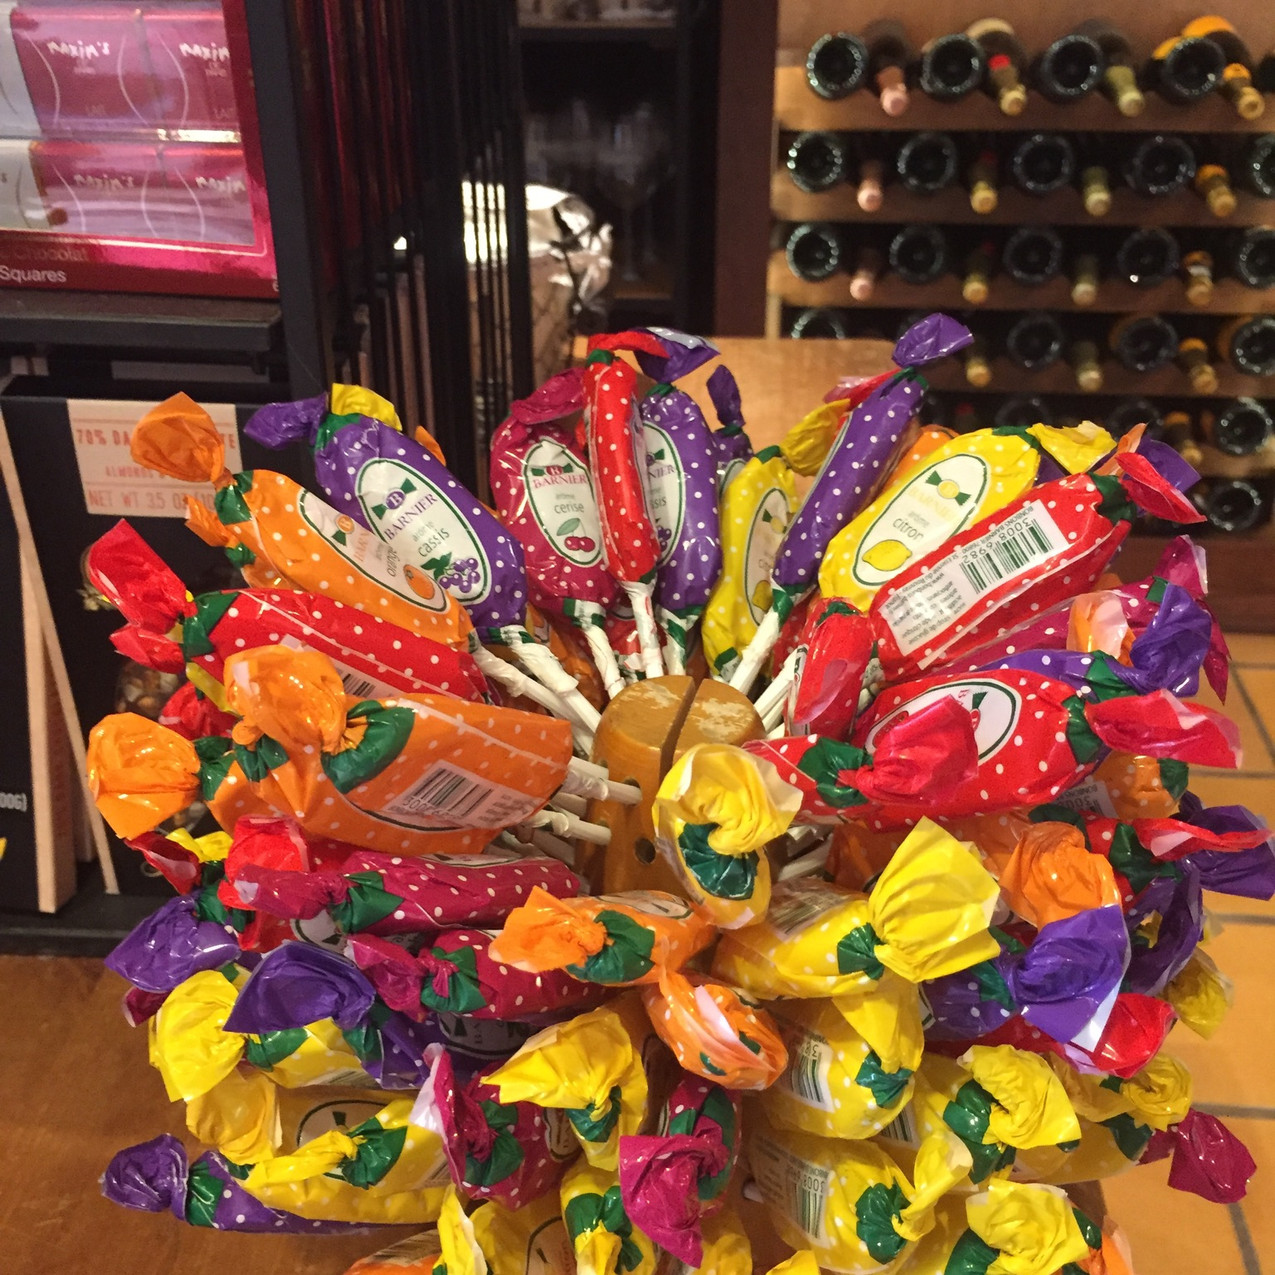 A bouquet of lollipops from the France pavilion.